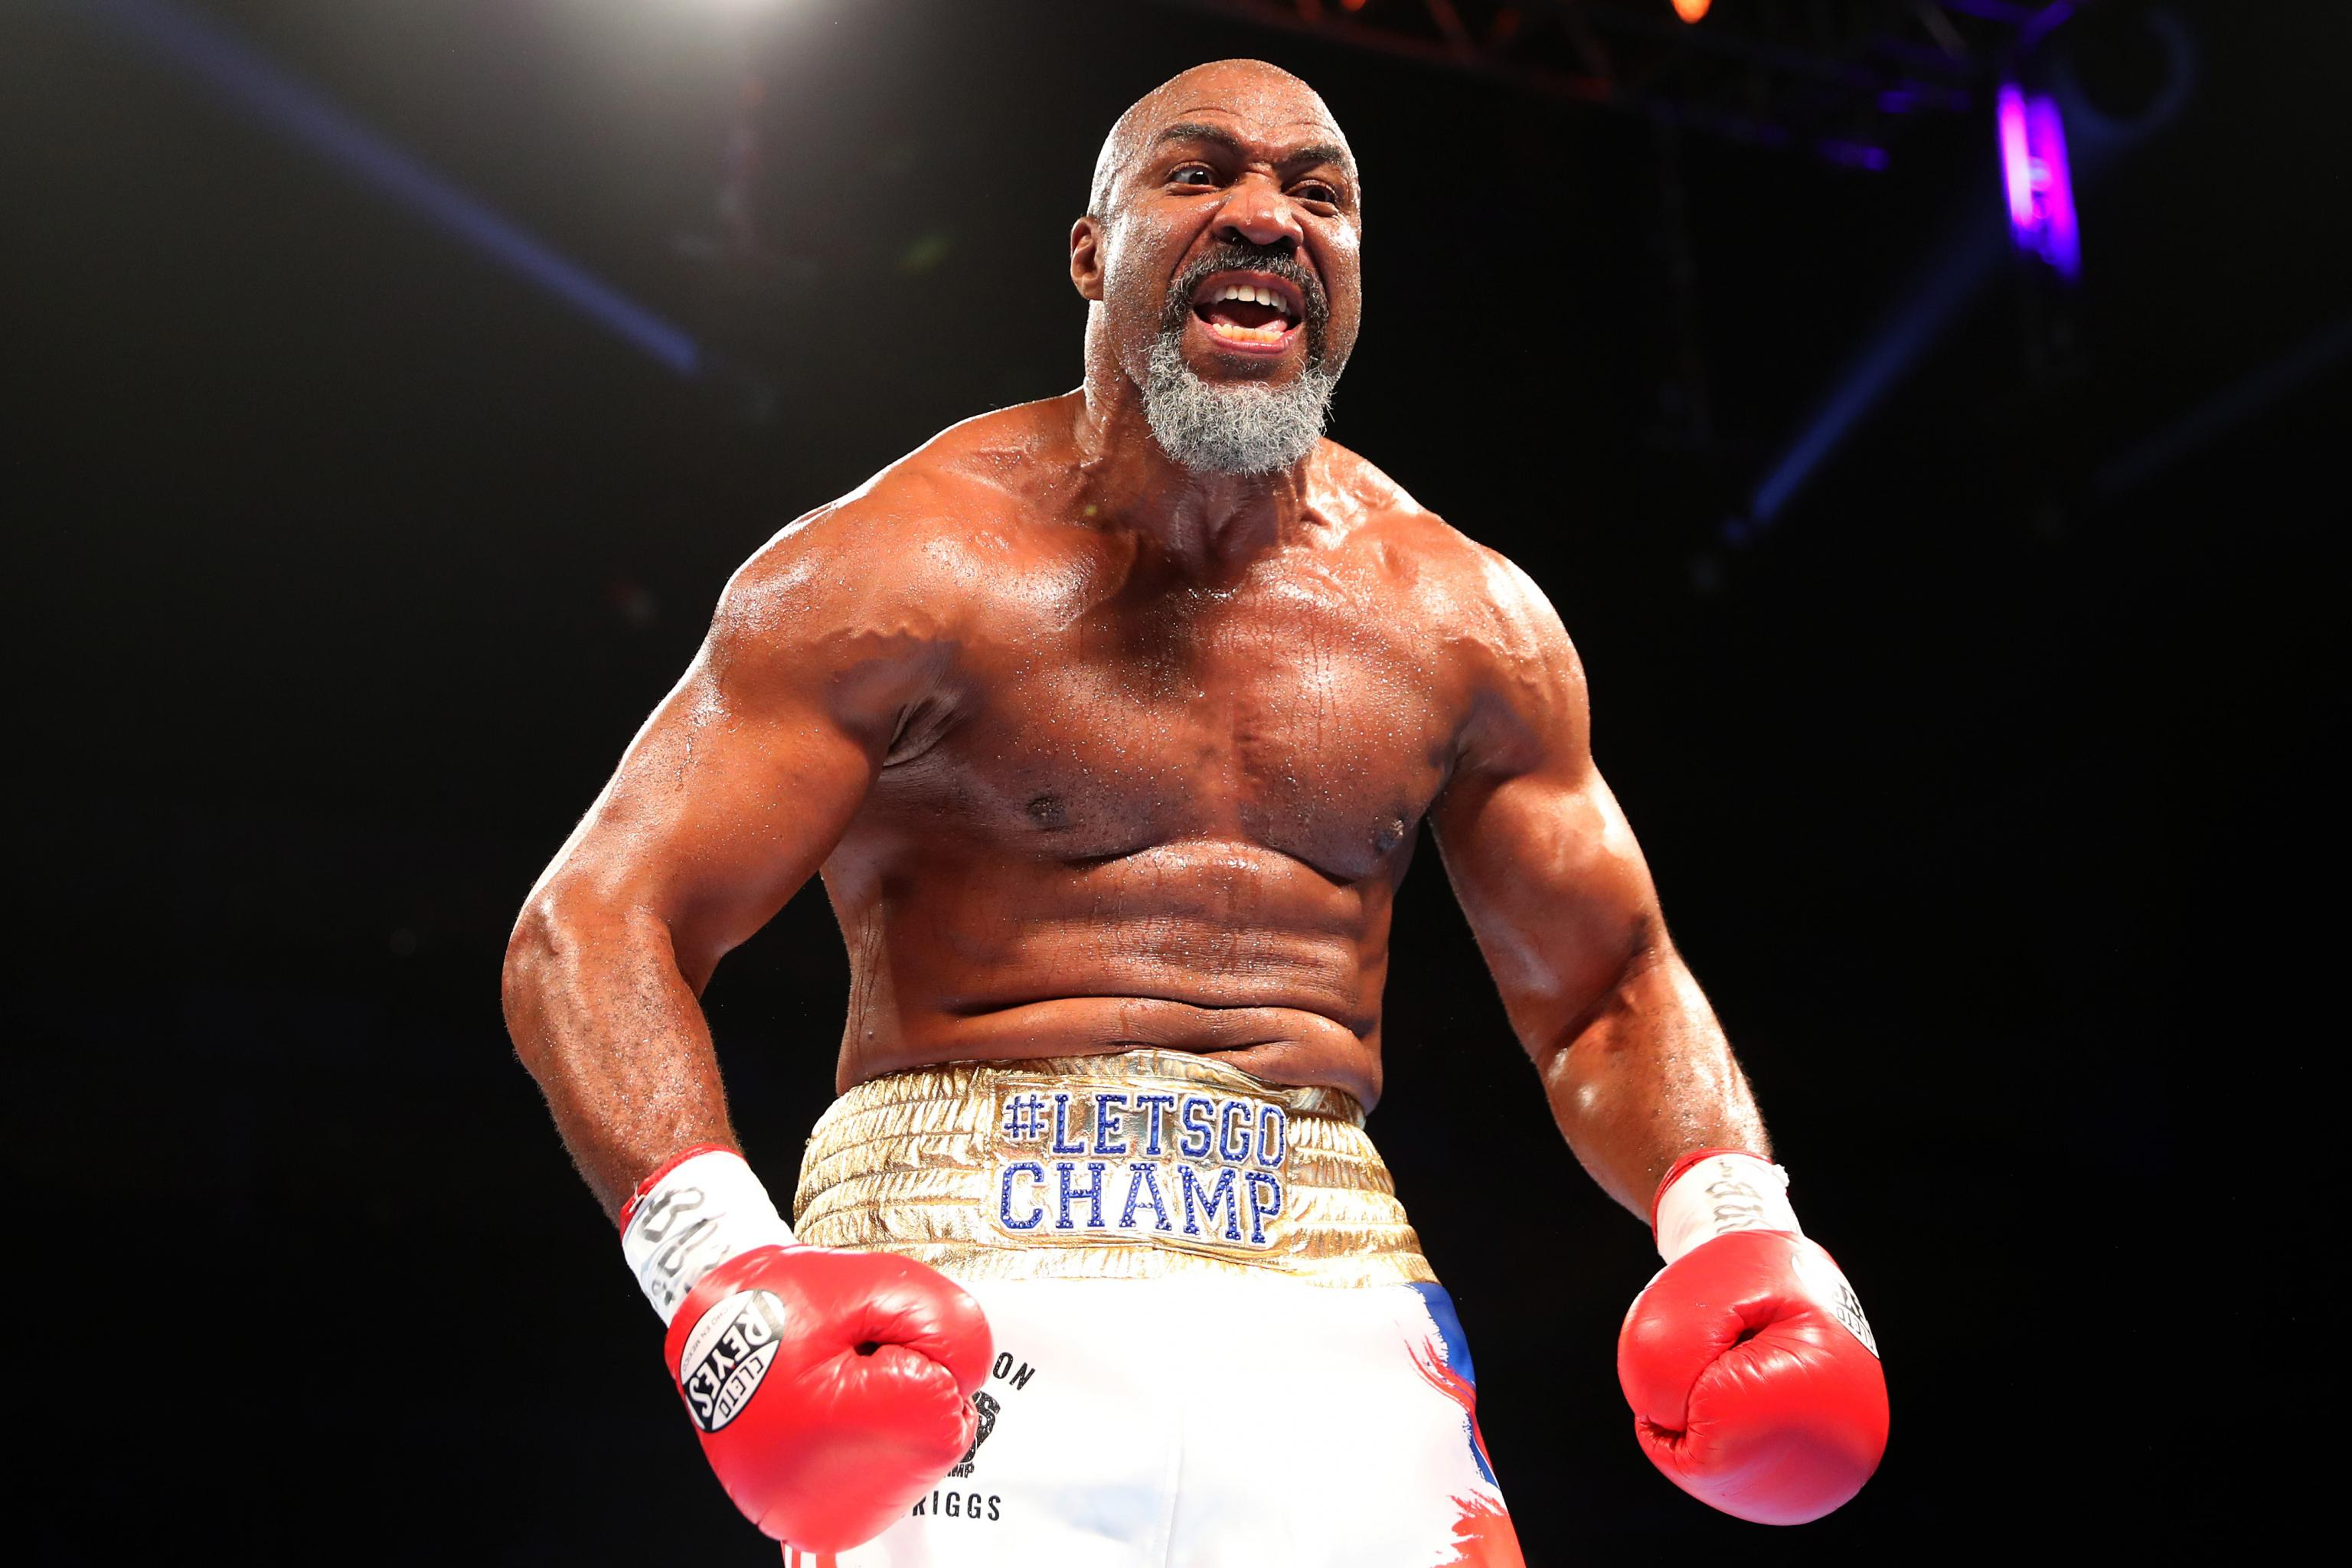 The Loose Cannon: Shannon Briggs Fighting to Remain Relevant